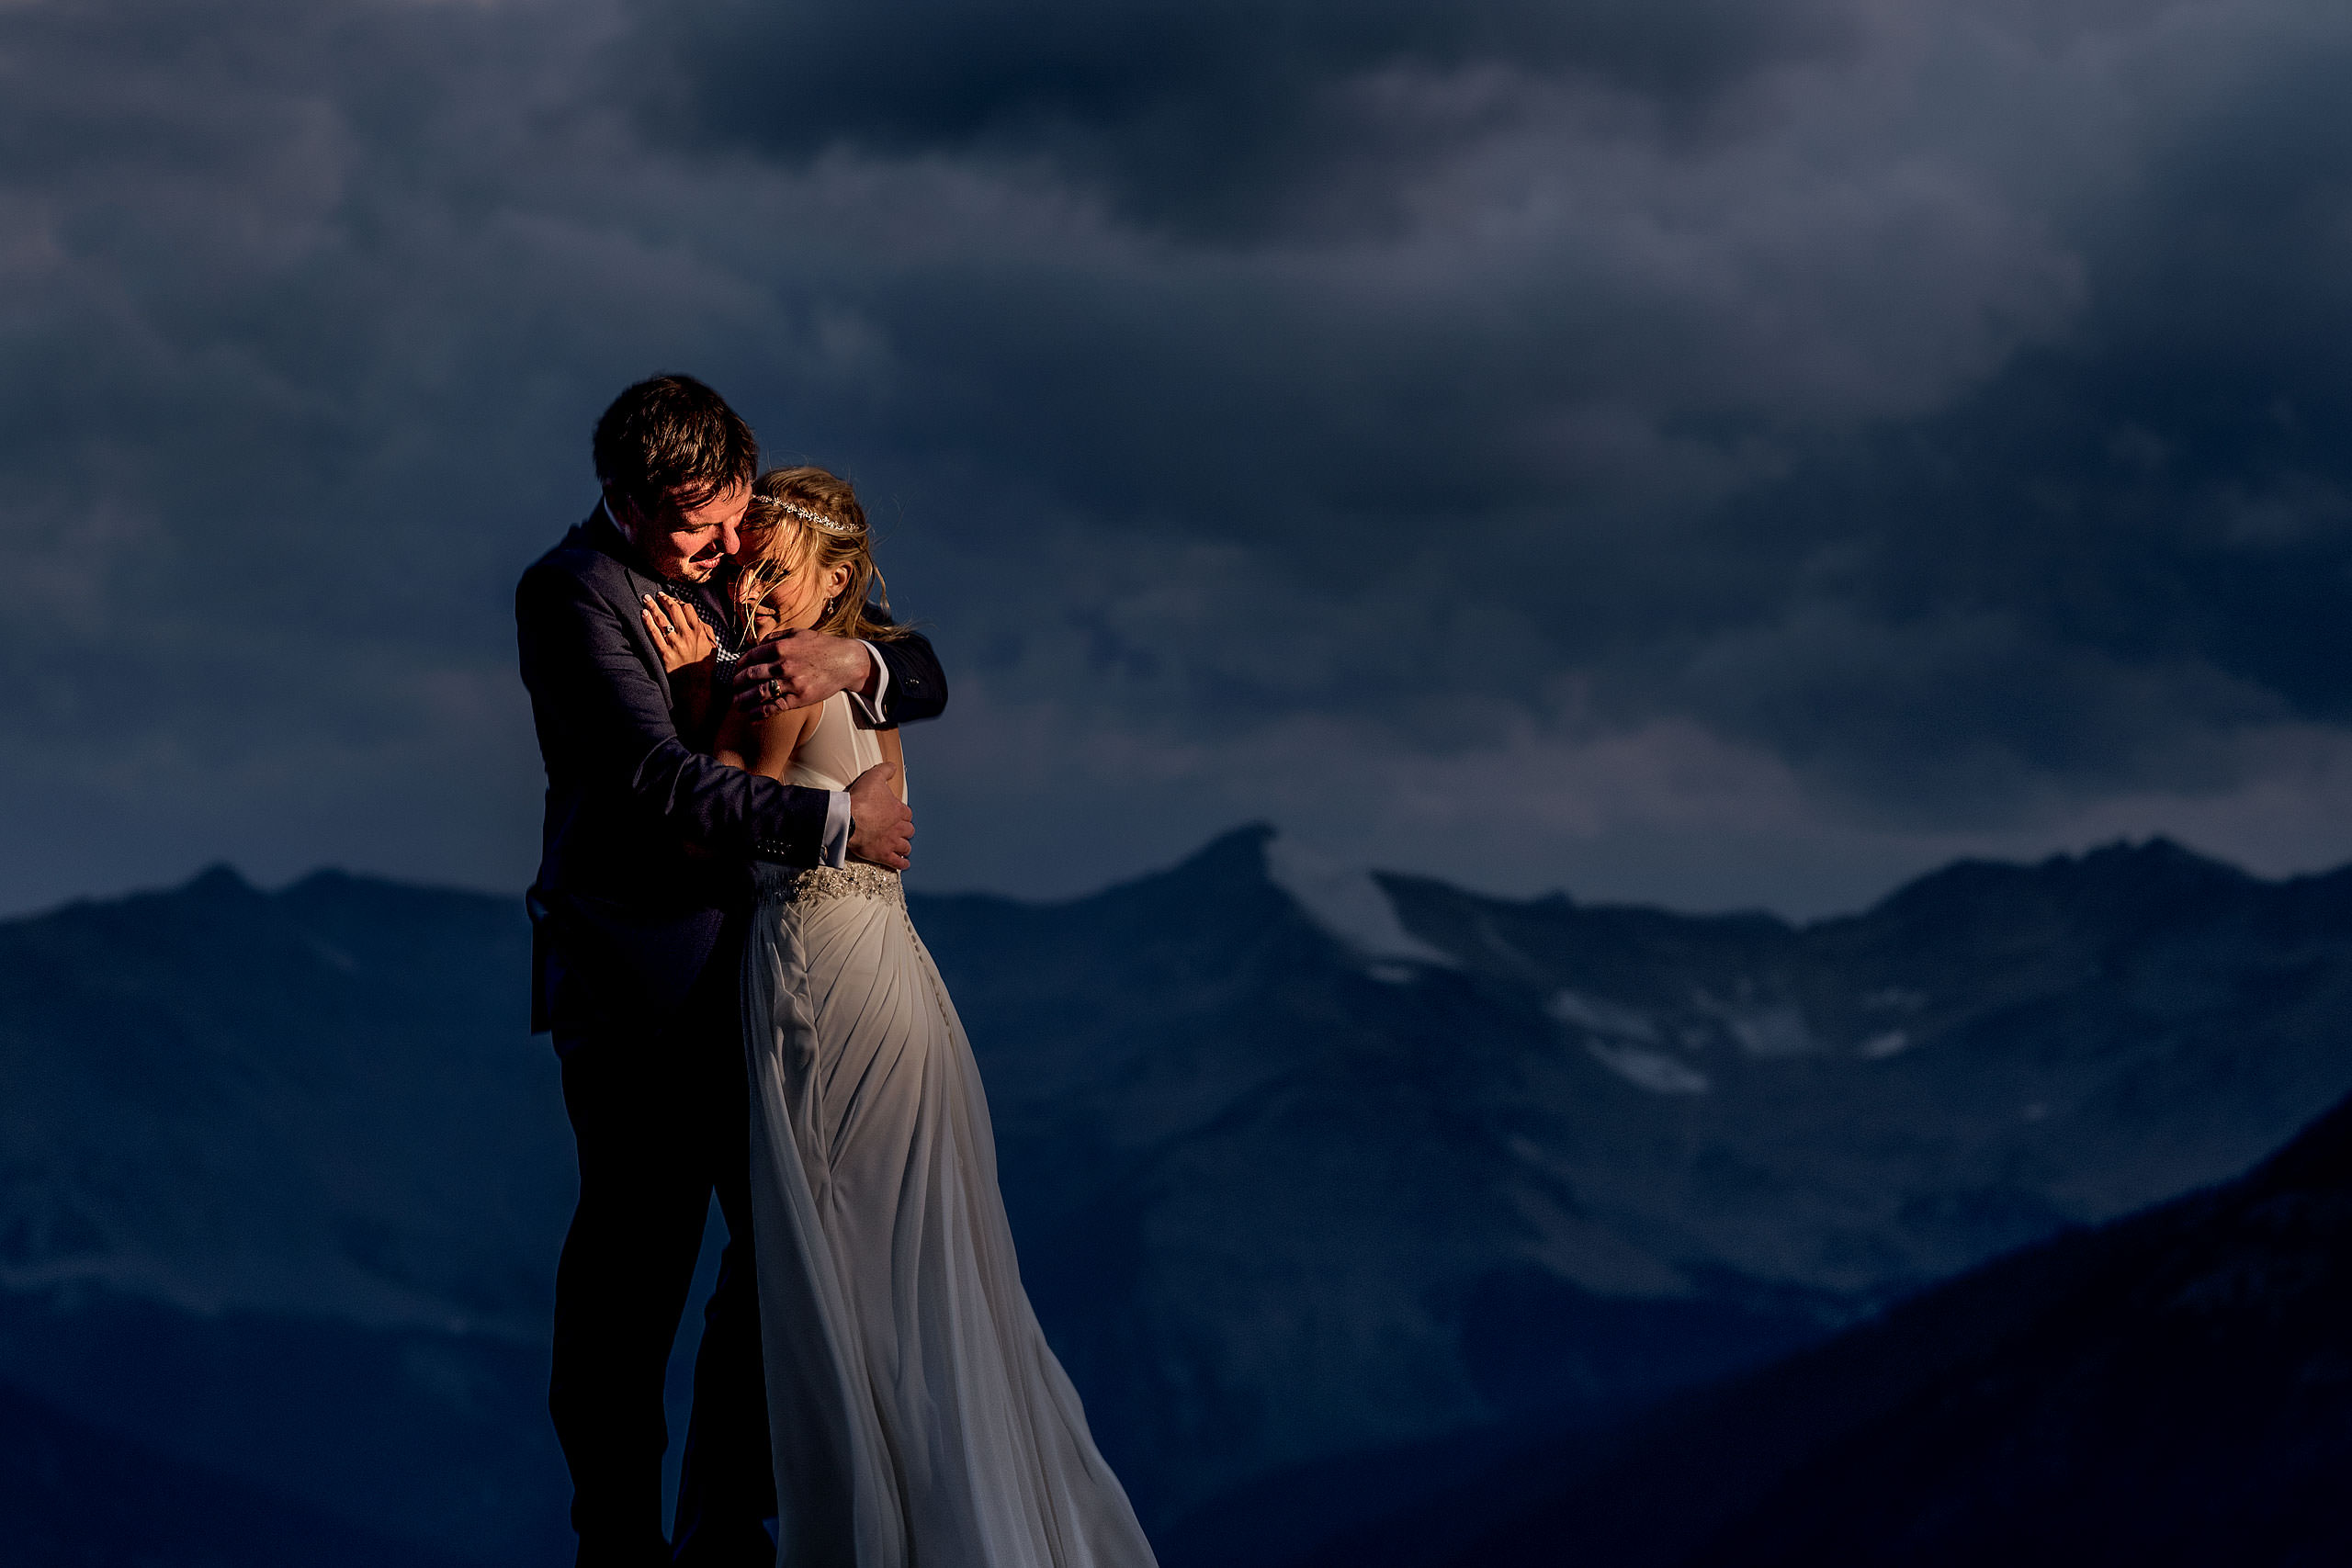 bride and groom embracing on top of a mountain at dusk